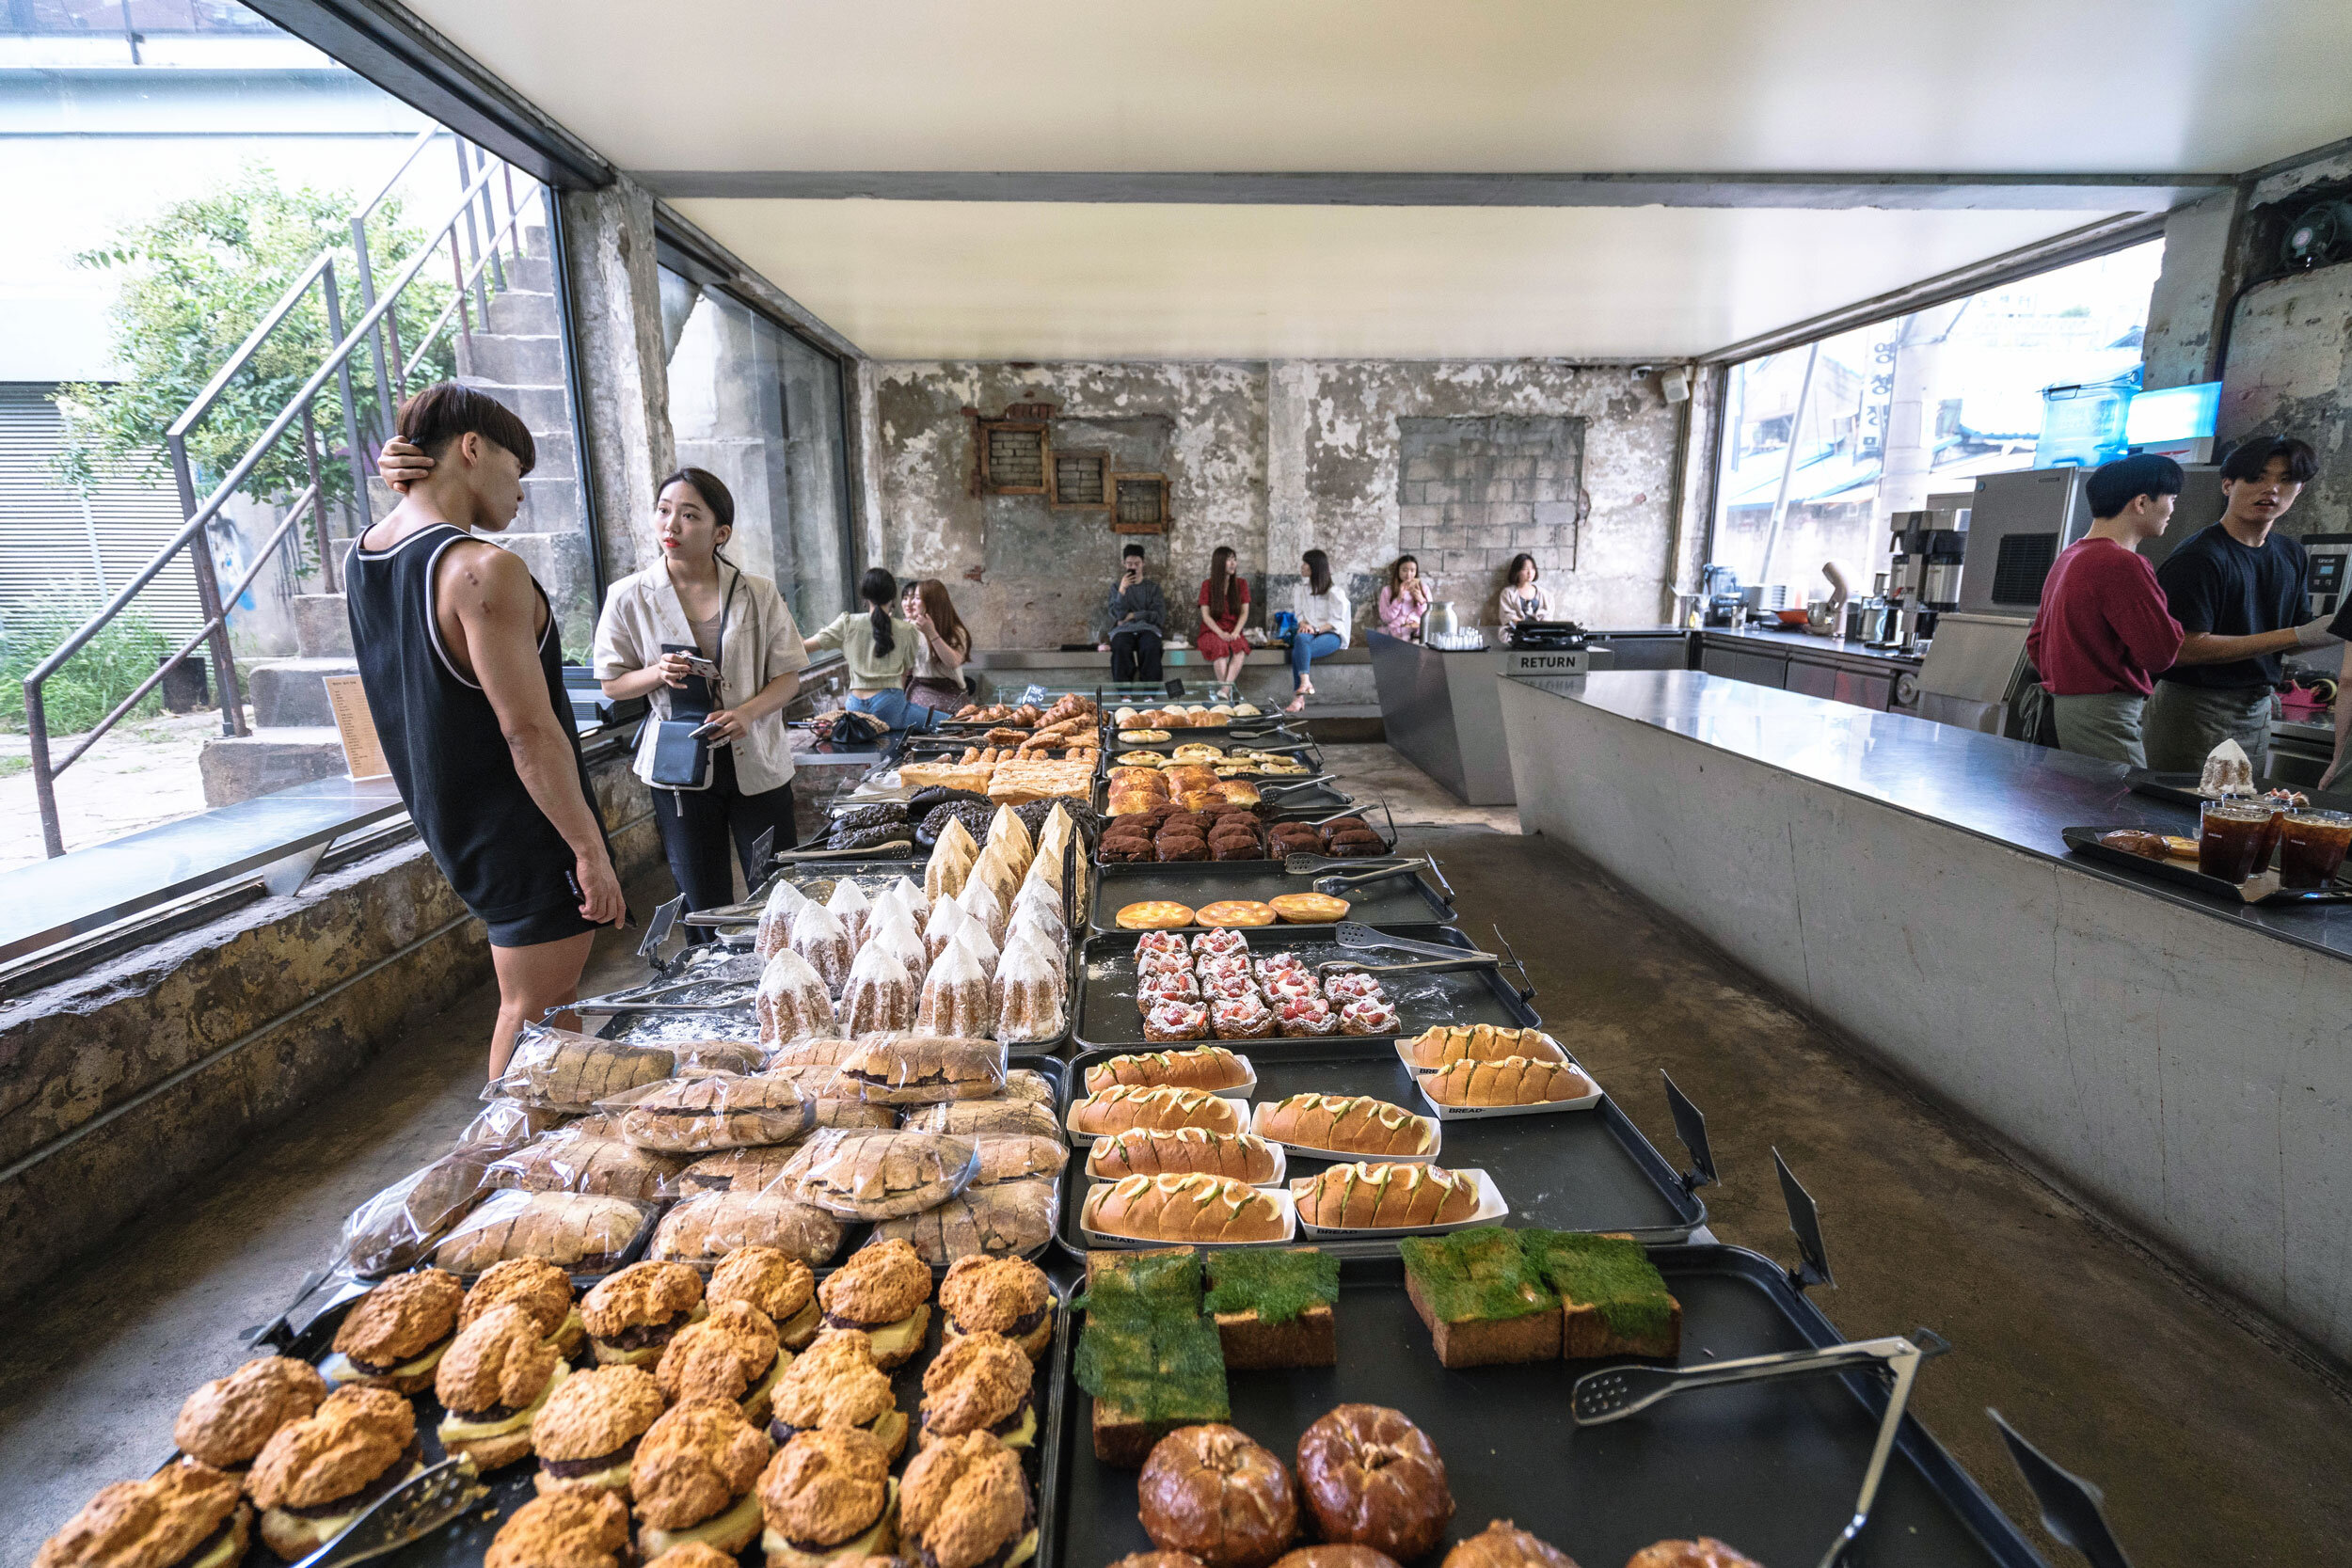 Pastries and baked goods